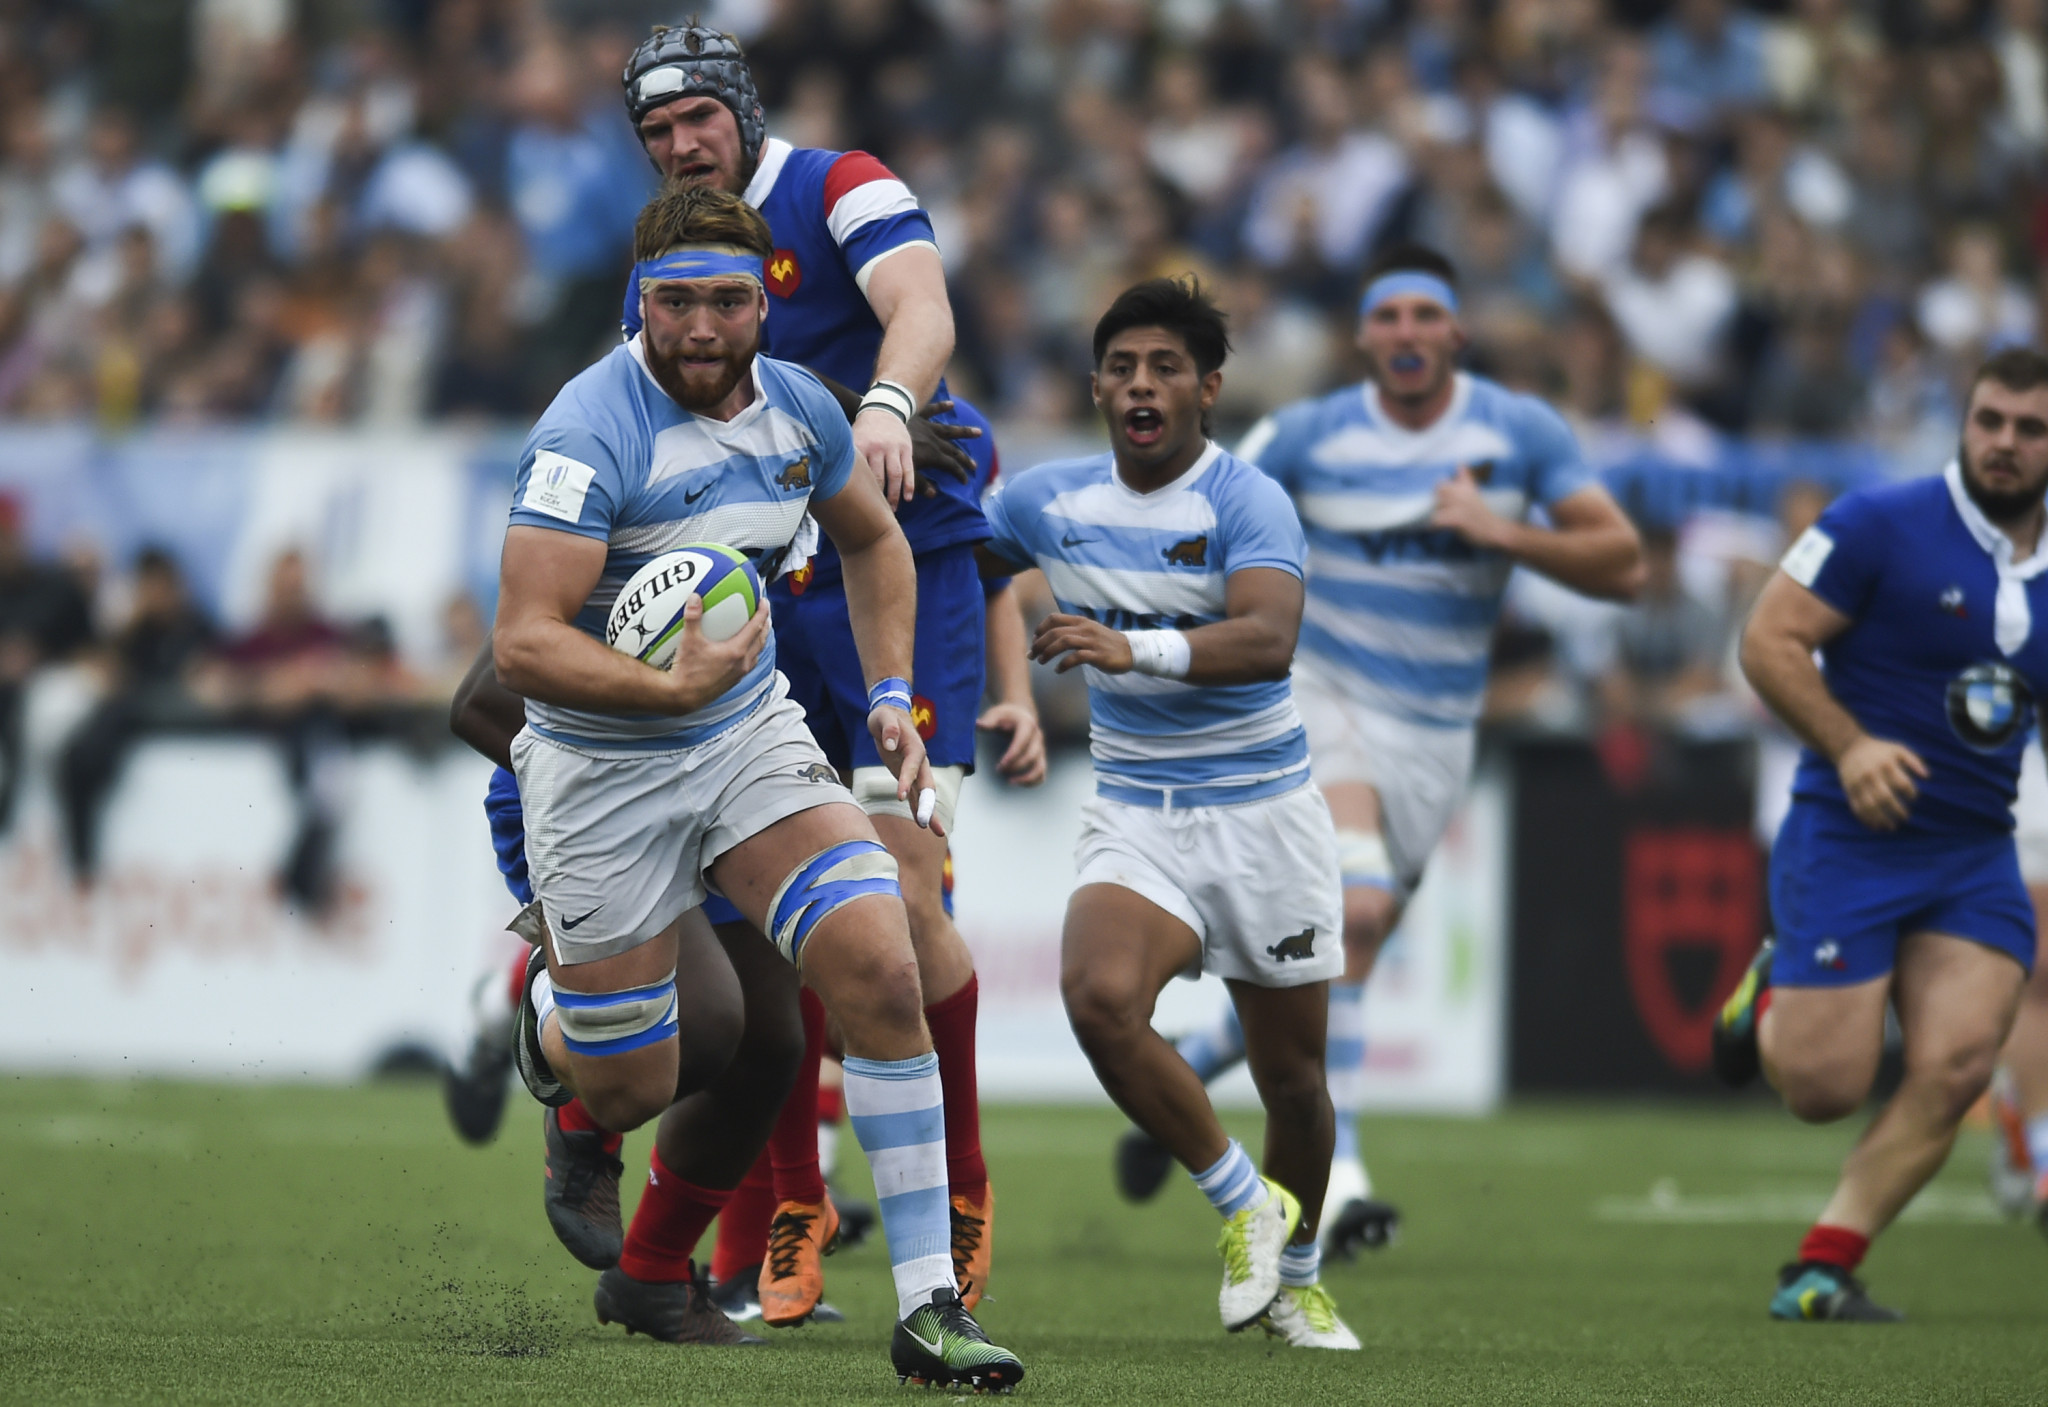 Hosts Argentina storm past holders France as semi-finalists decided at World Rugby Under-20 Championship